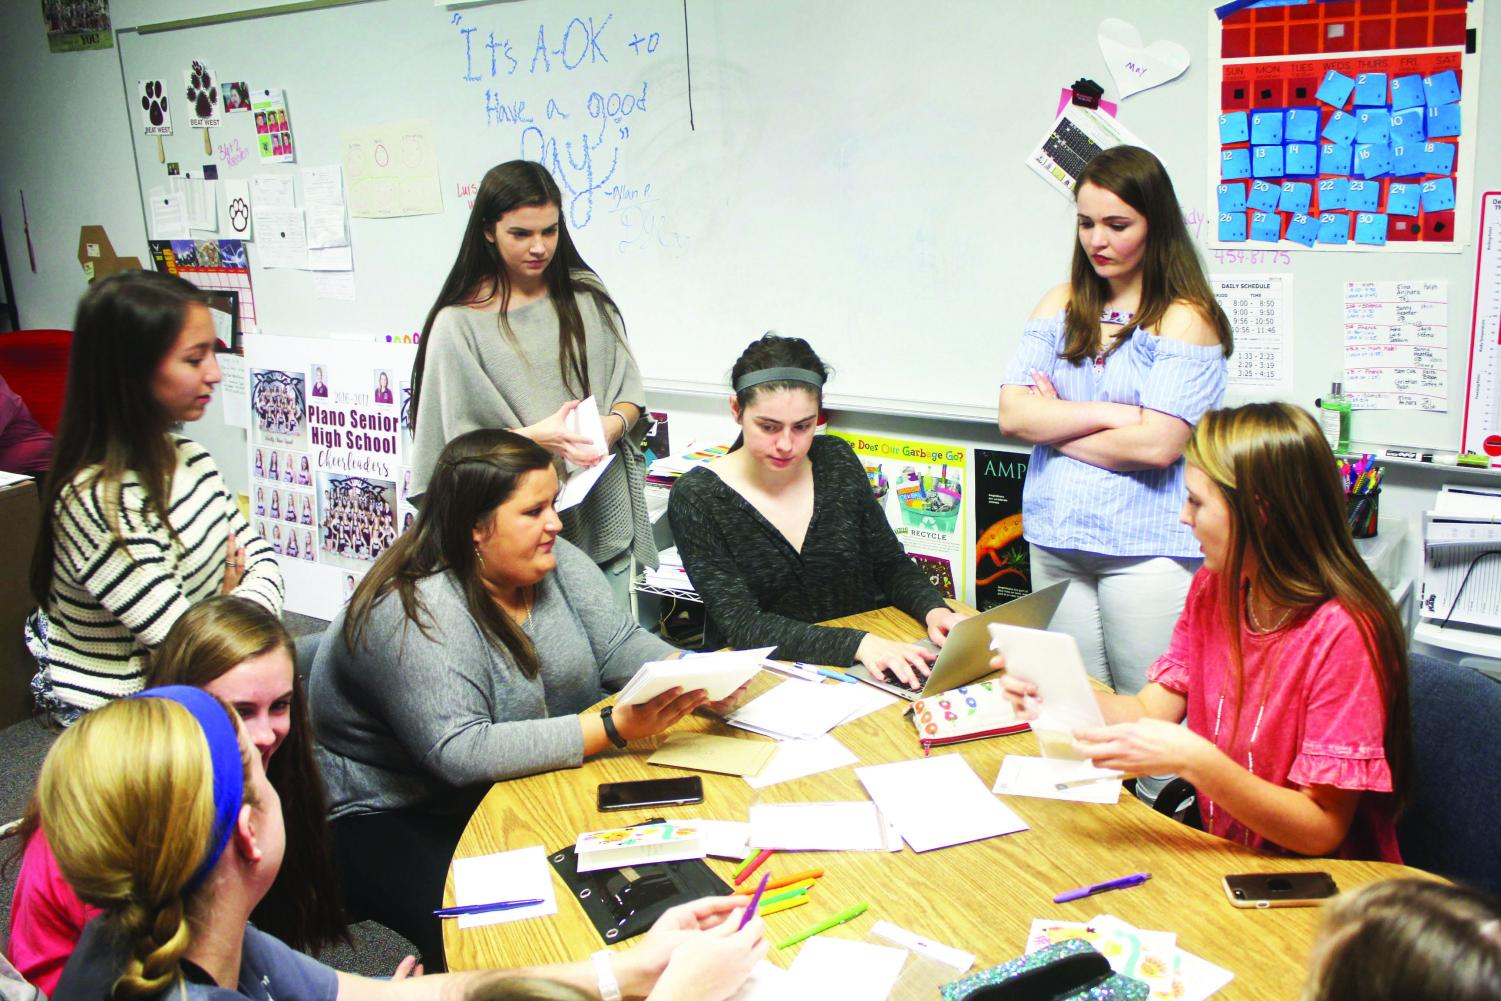 Senior Caitlyn Pierce, Claire McKinney, Megan Manly, Elyse Young, Kaylee Willman and juniors Sarah Bruner and Anna Smith write letters for Caring Cats.